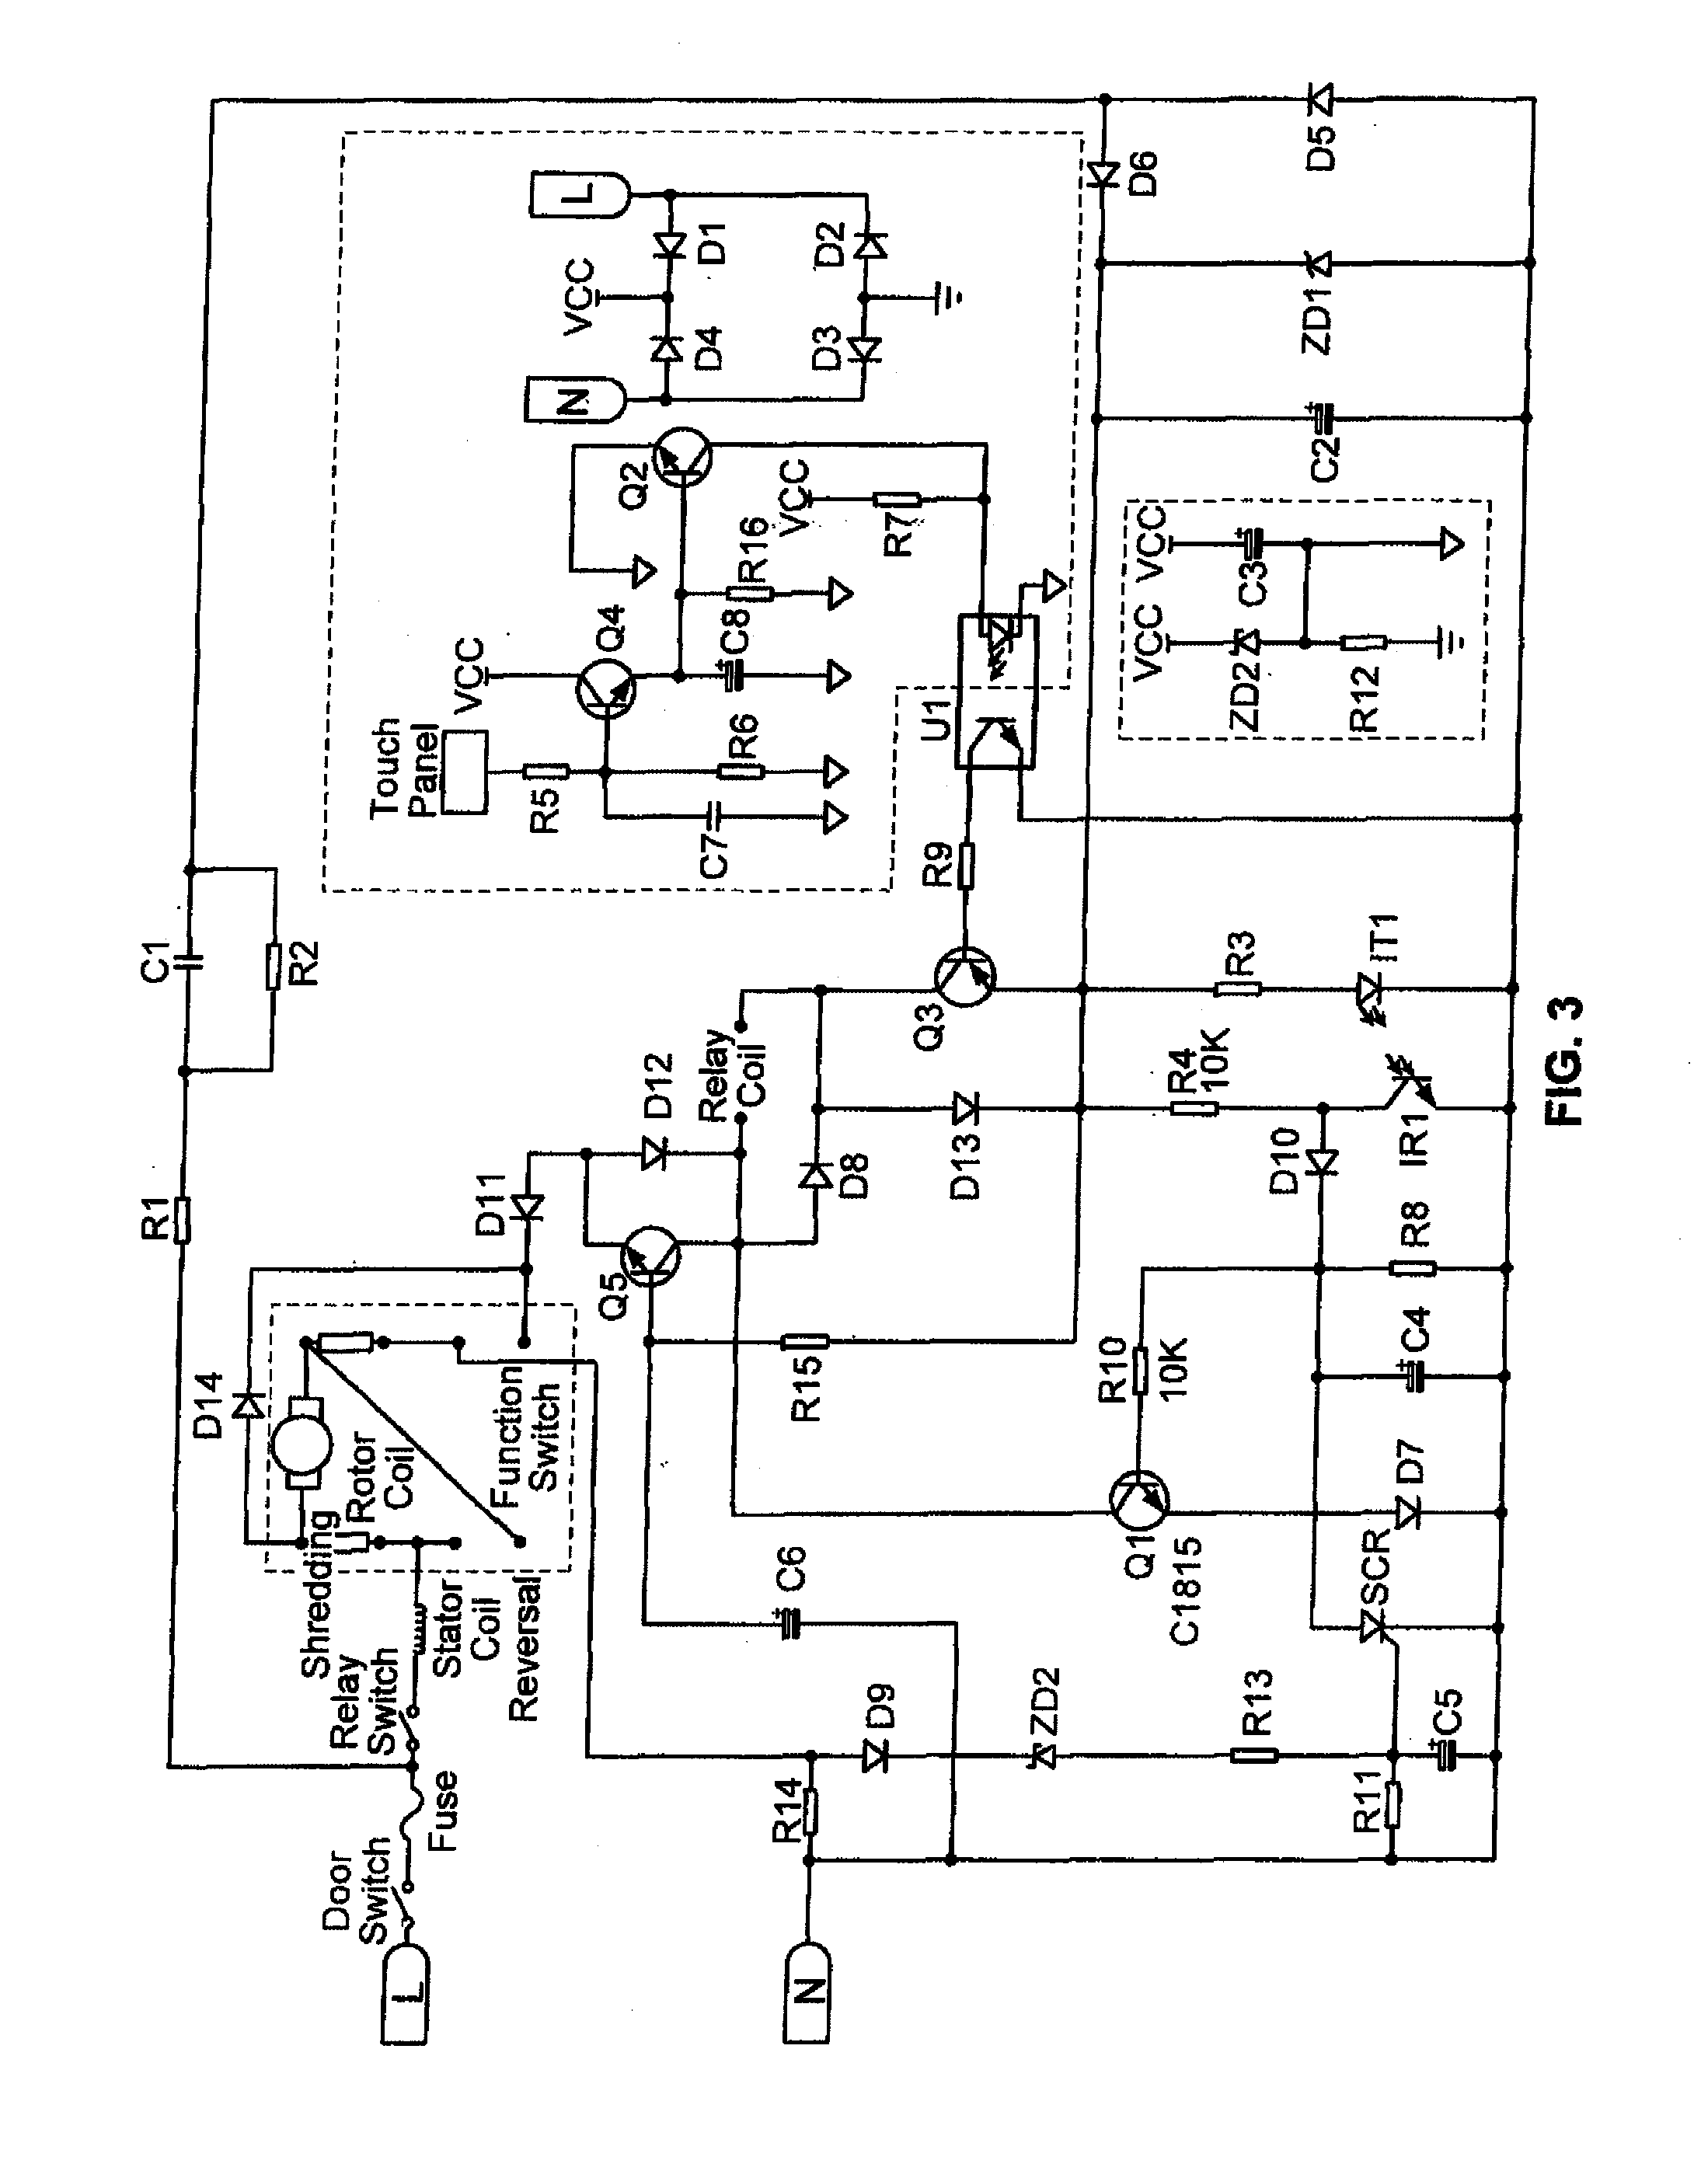 Paper Shredder Wiring Diagramhtml Auto Electrical Diagram